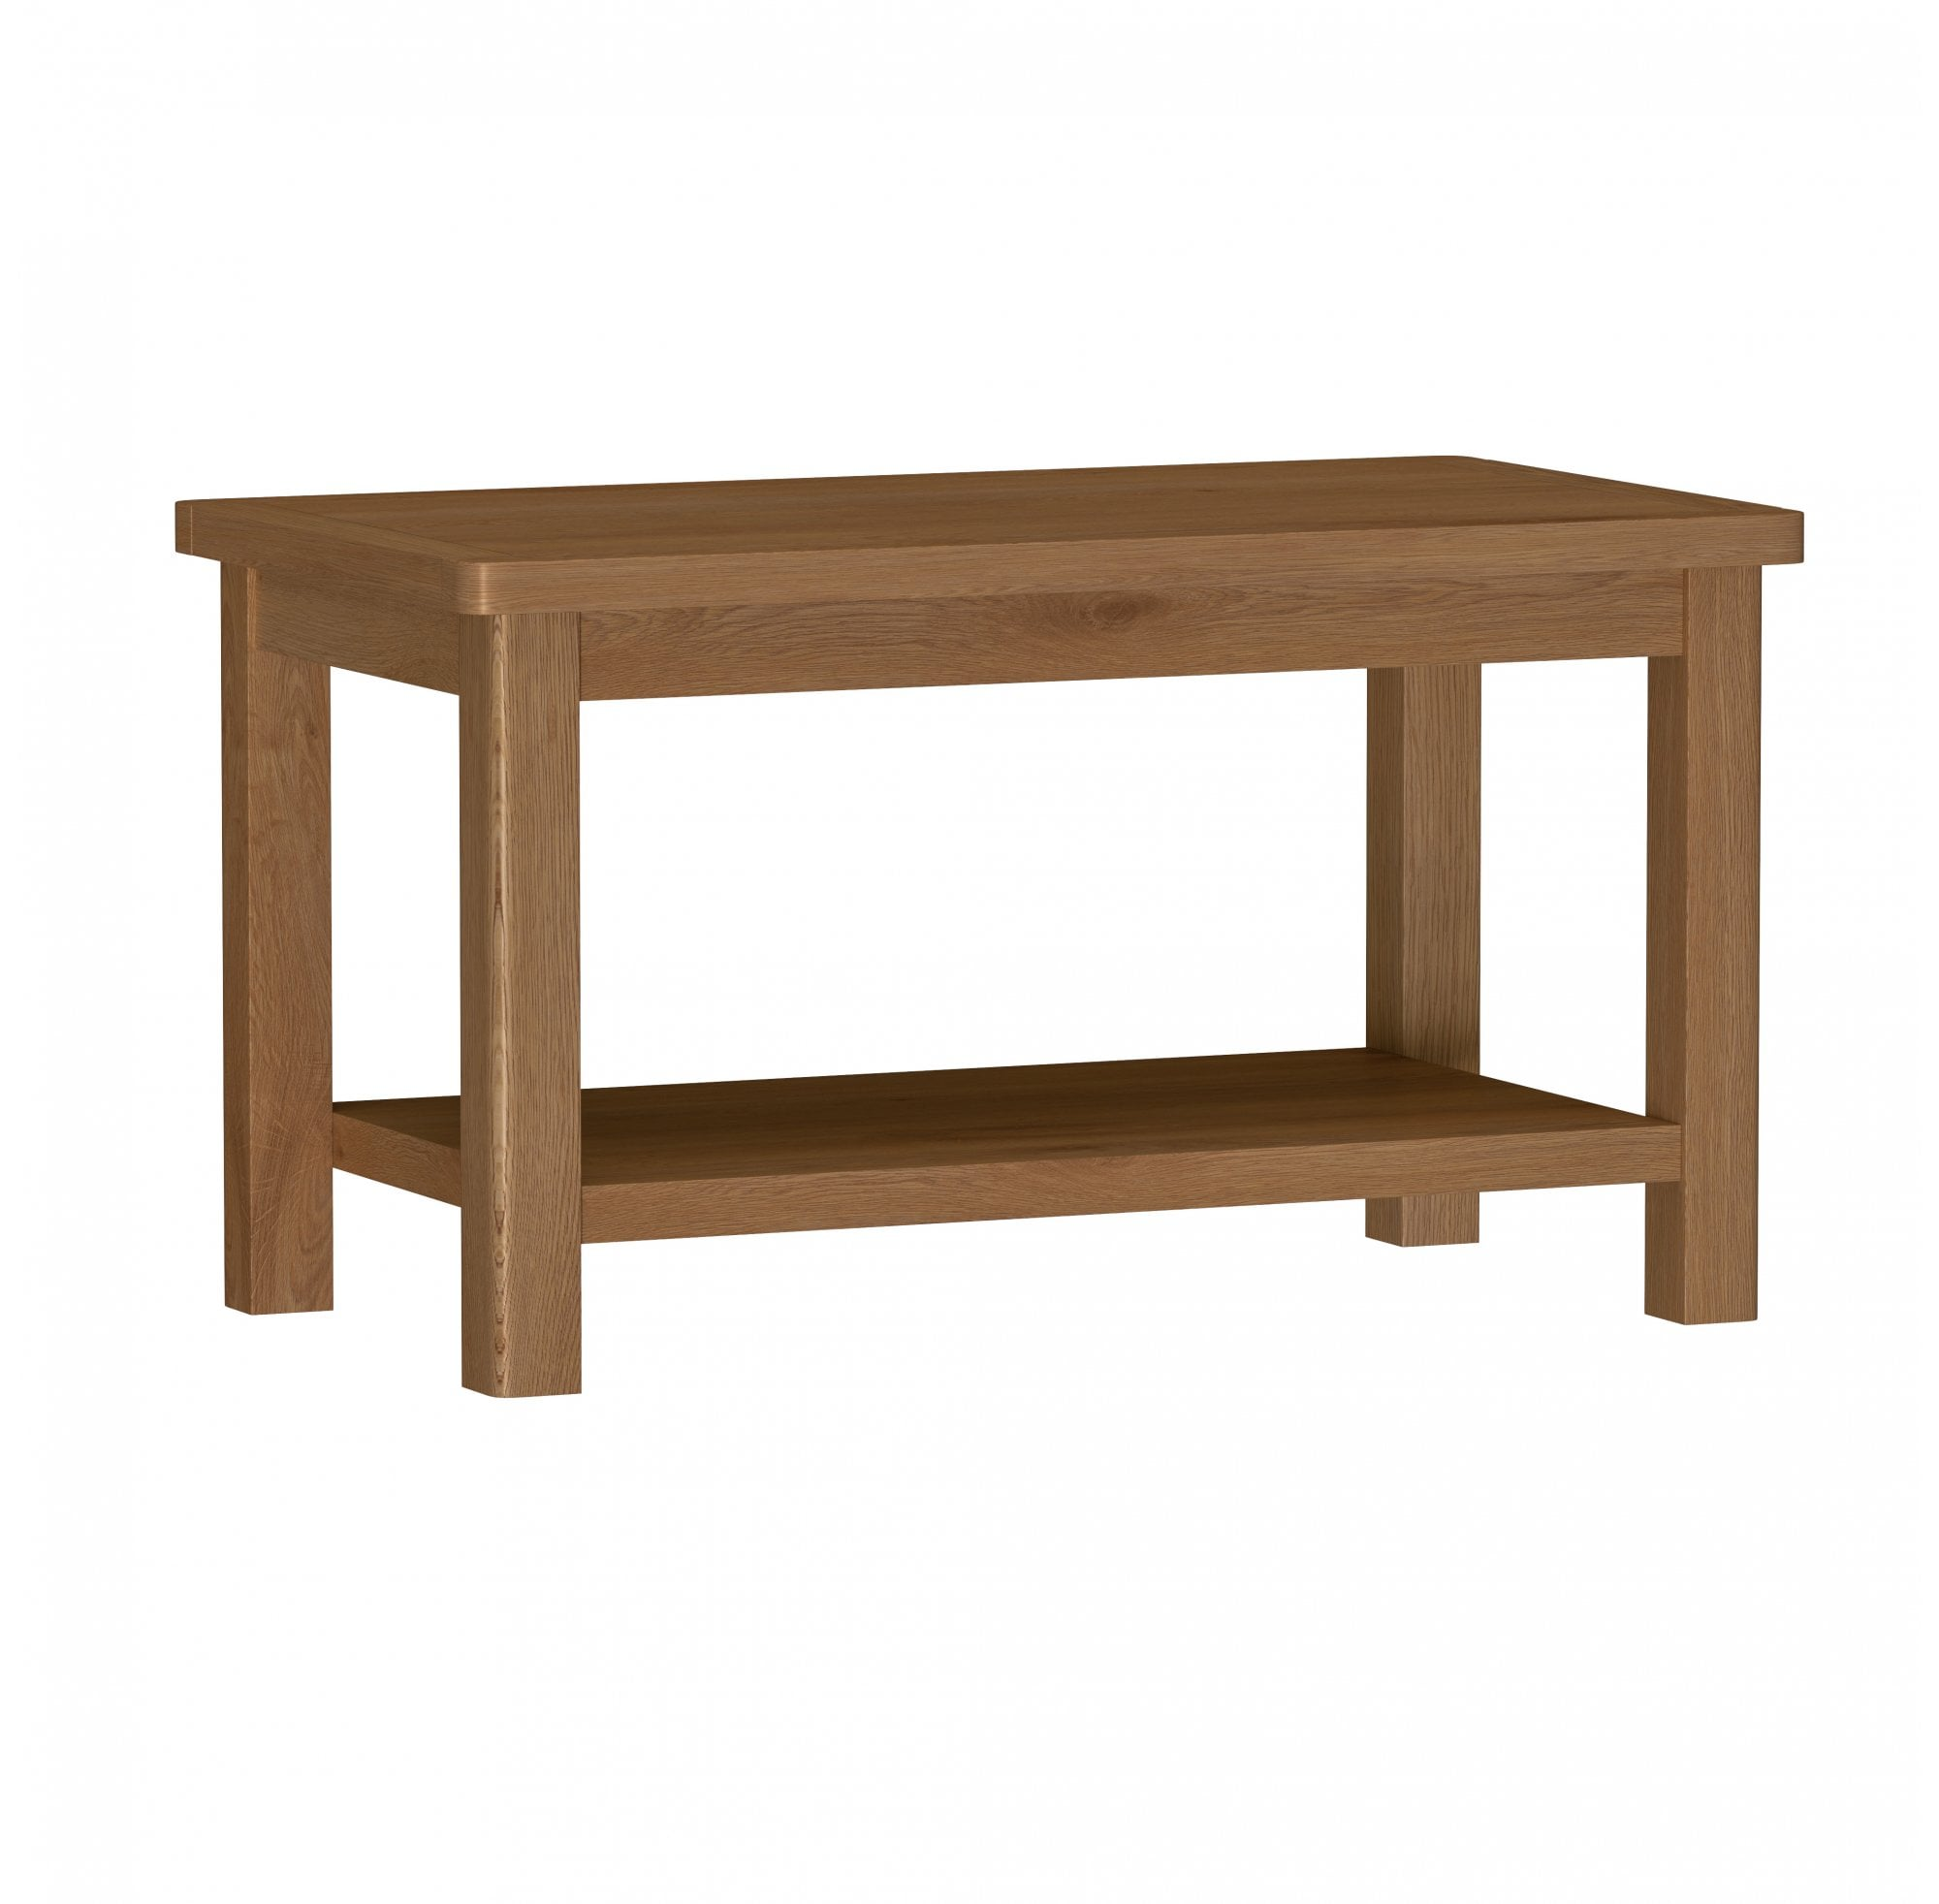 - Newbarn Oak Small Coffee Table - Furniture From Readers Interiors UK